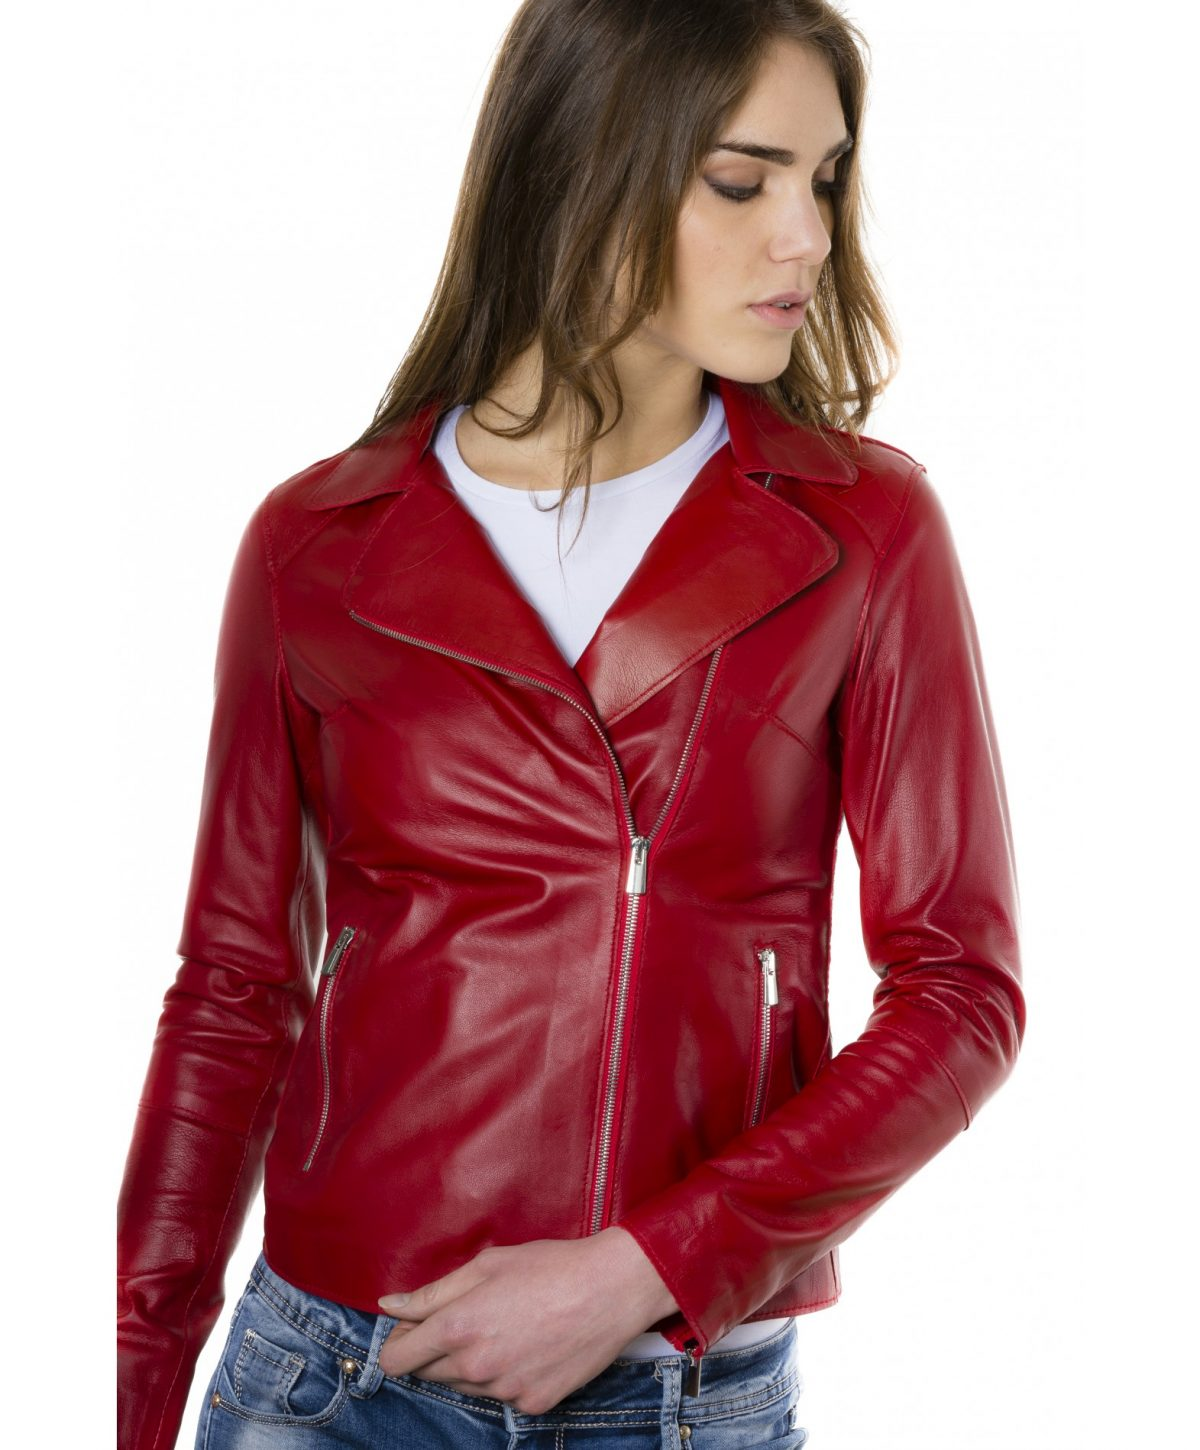 Red Color Nappa Lamb Leather Jacket Smooth Effect